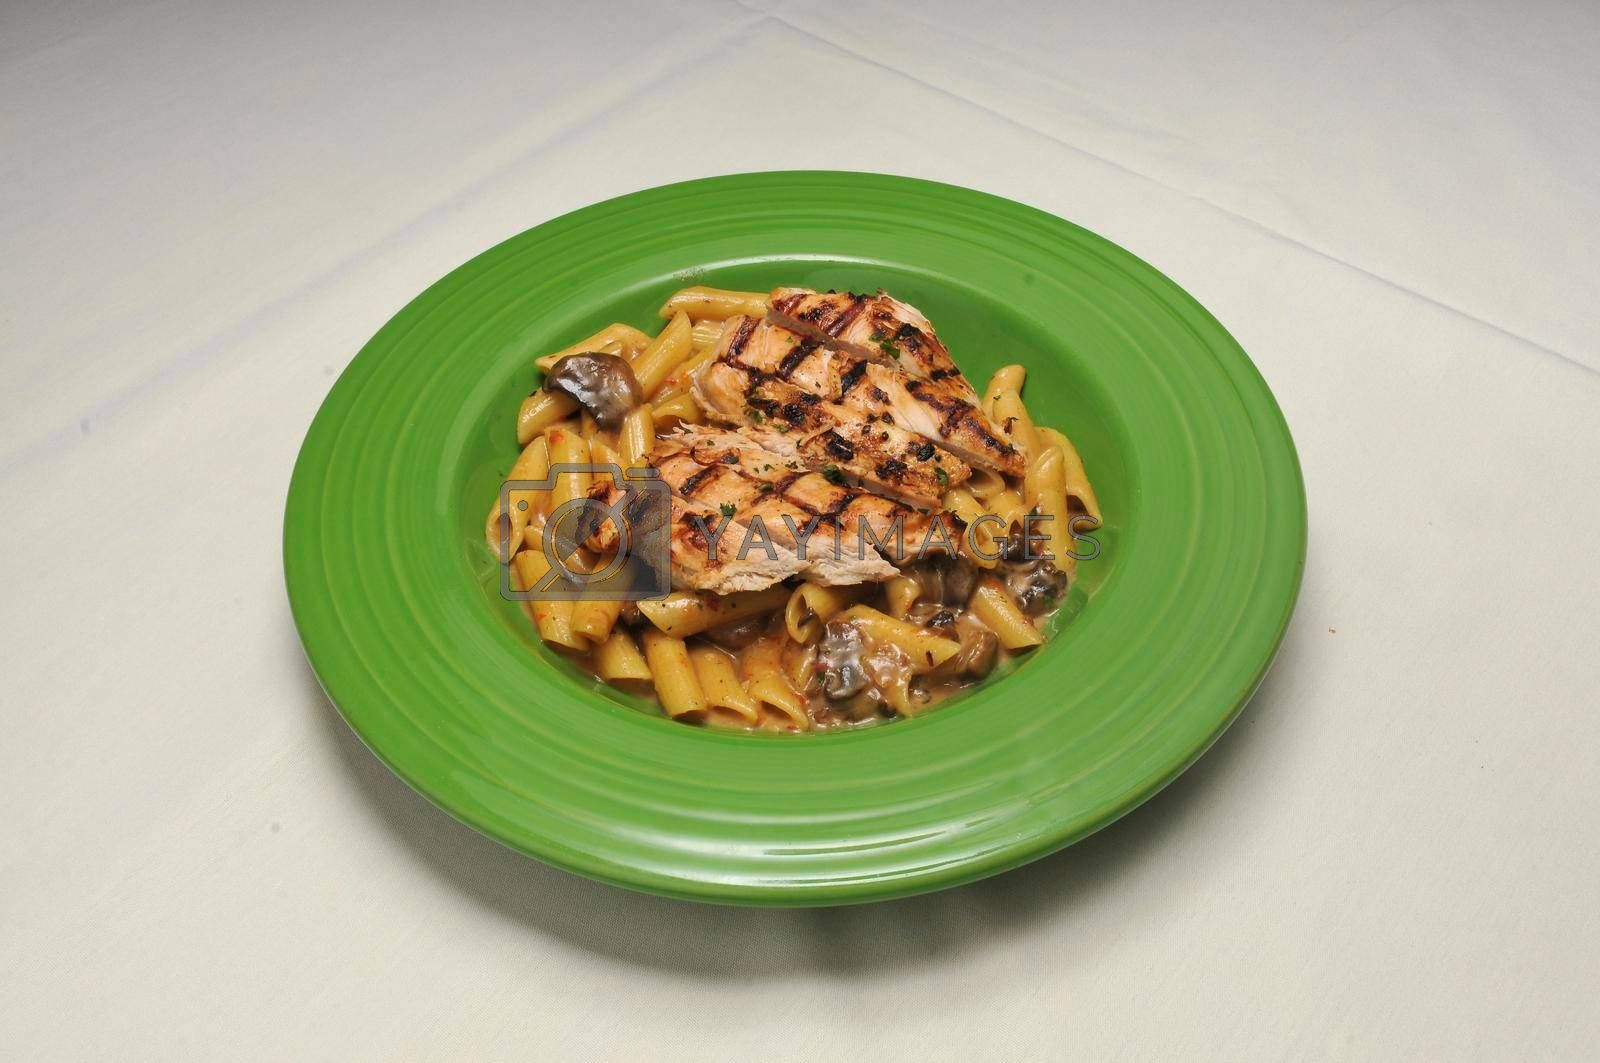 Traditional and authentic Italian dish known as chickn Milano